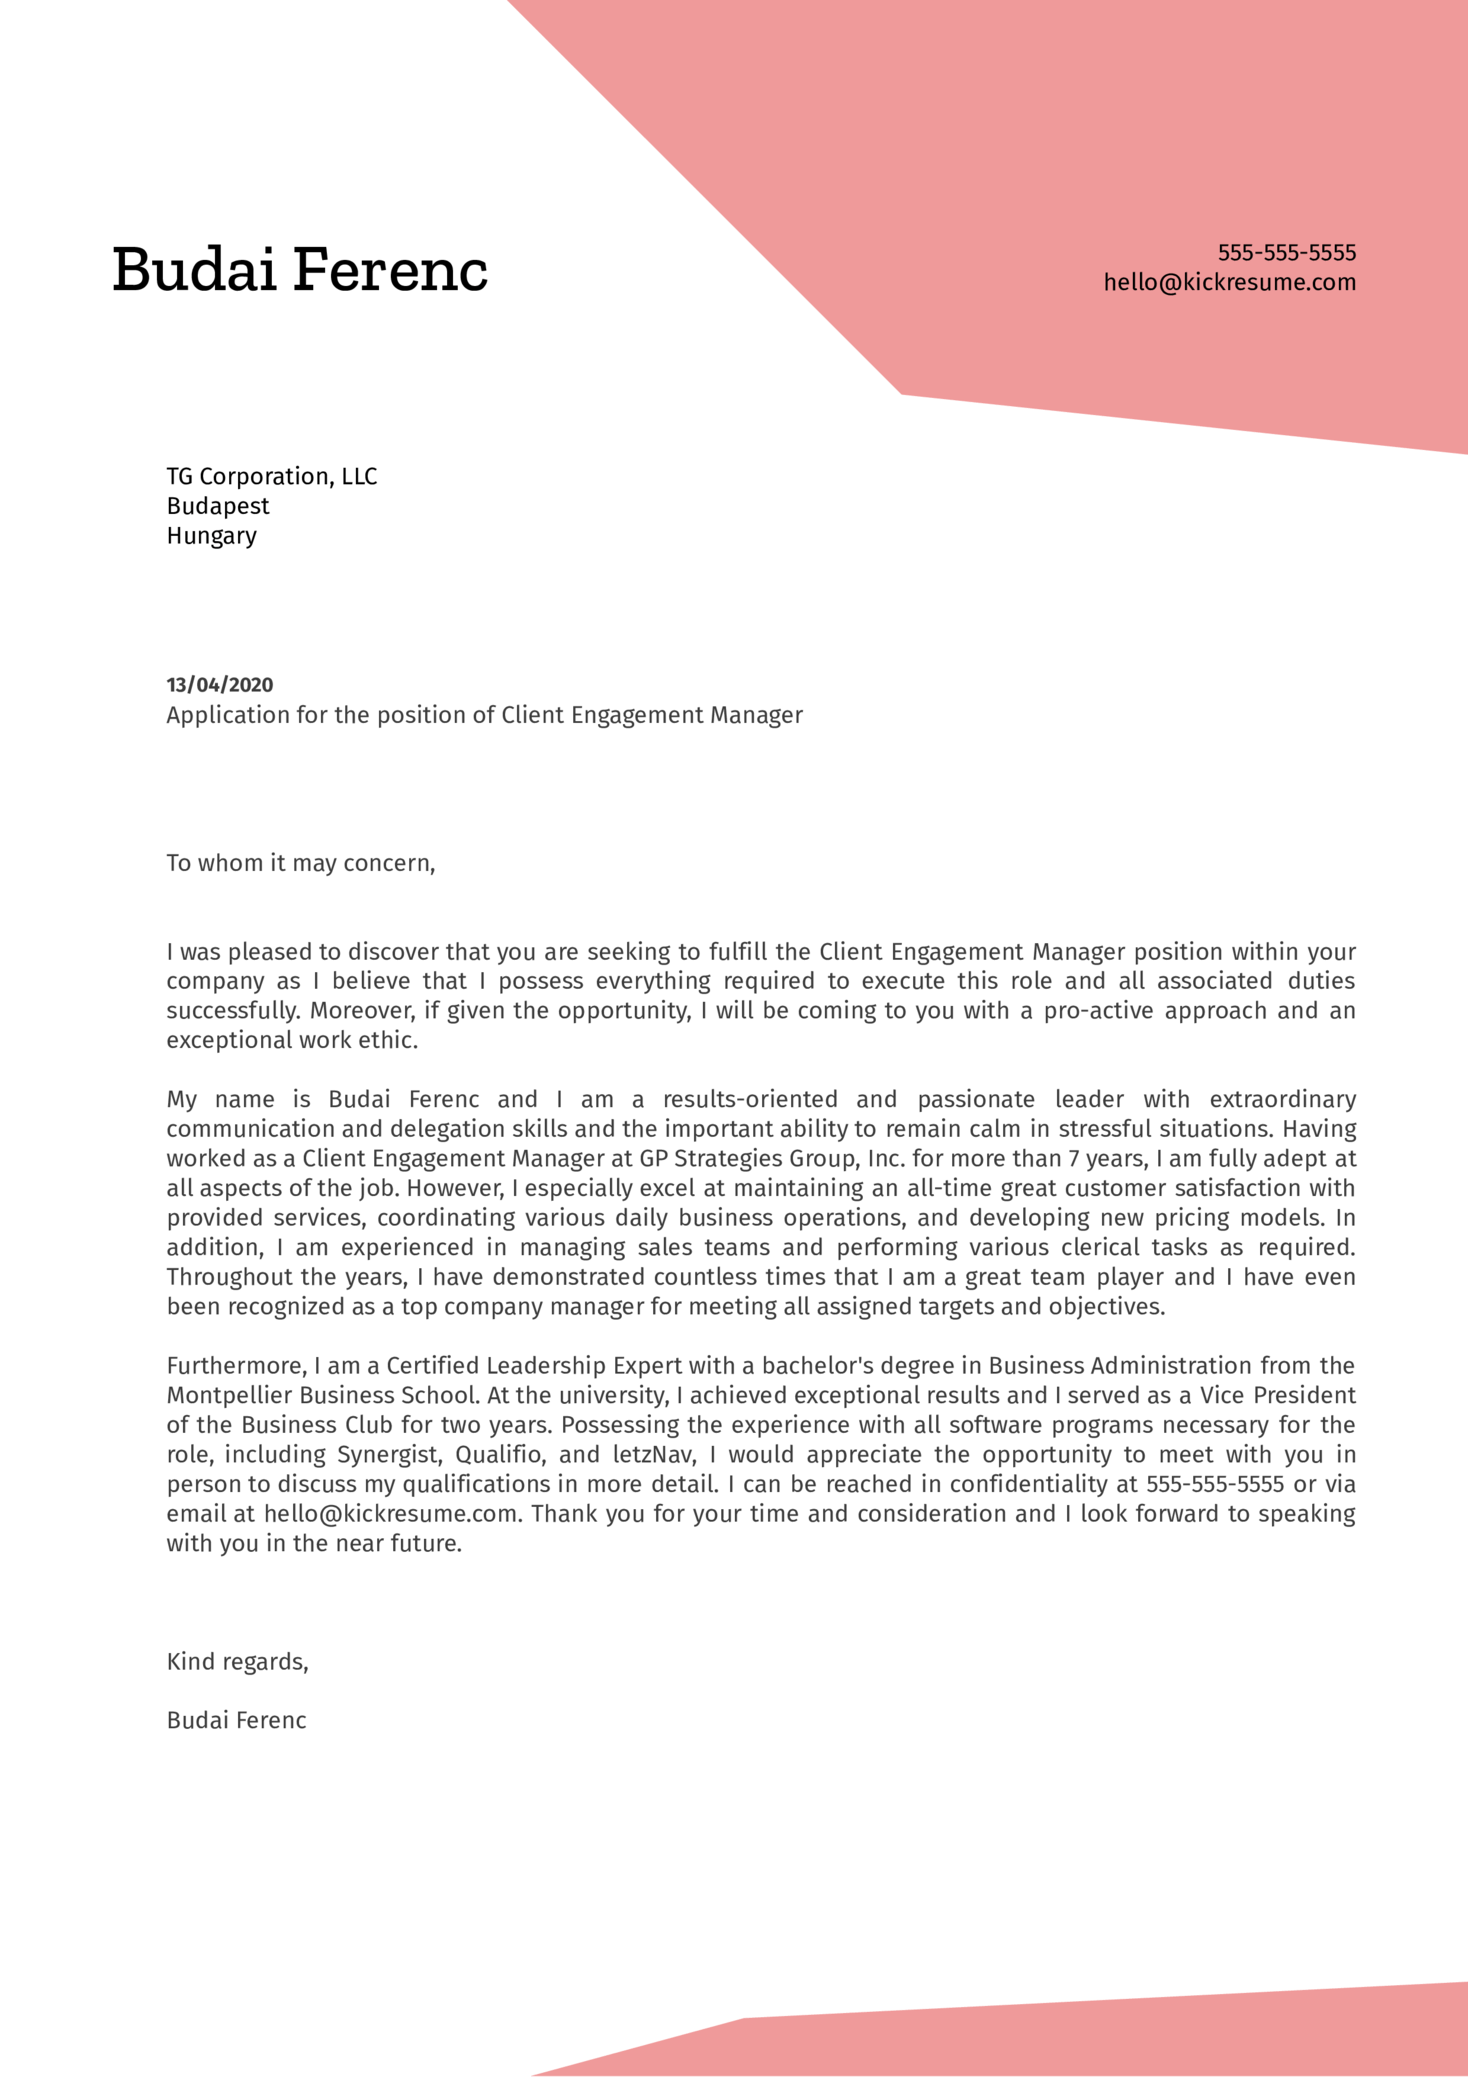 Client Engagement Manager Cover Letter Example